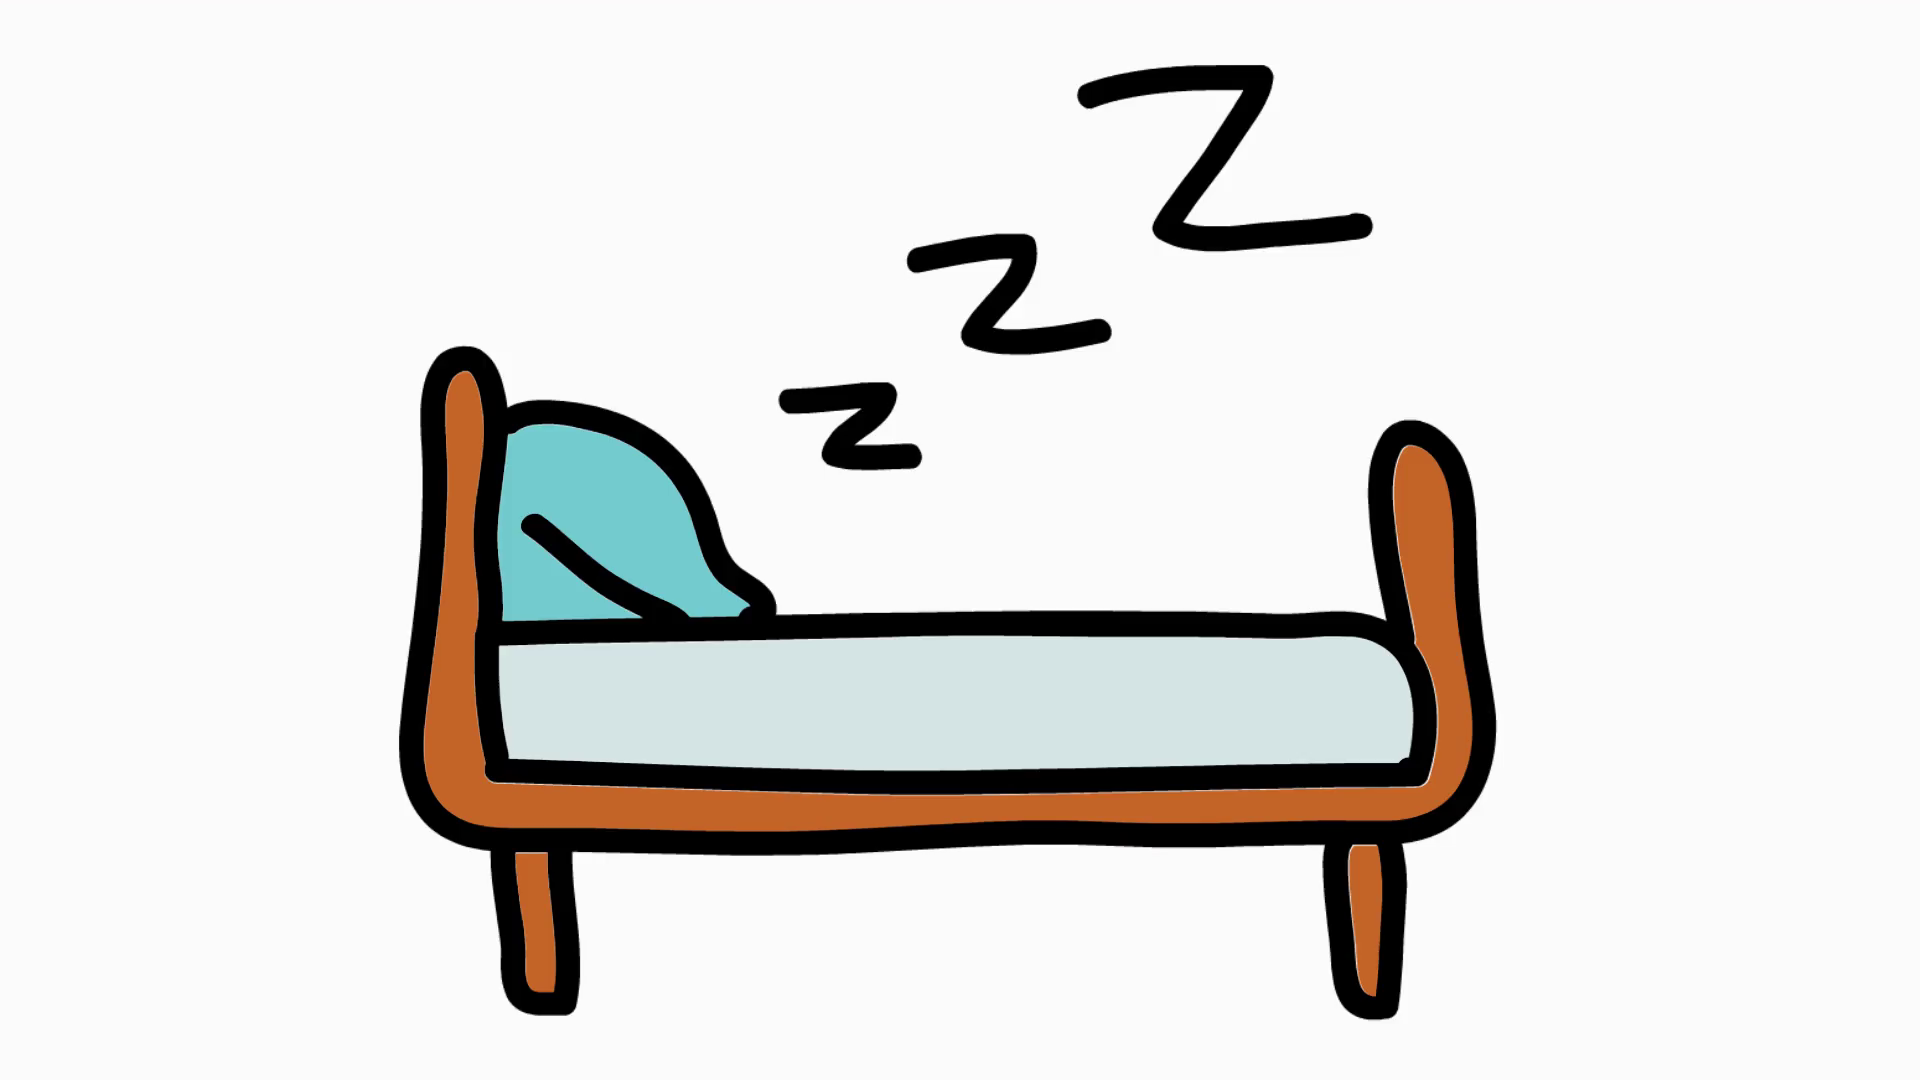 Sleep hand drawn color. Bed clipart transparent background